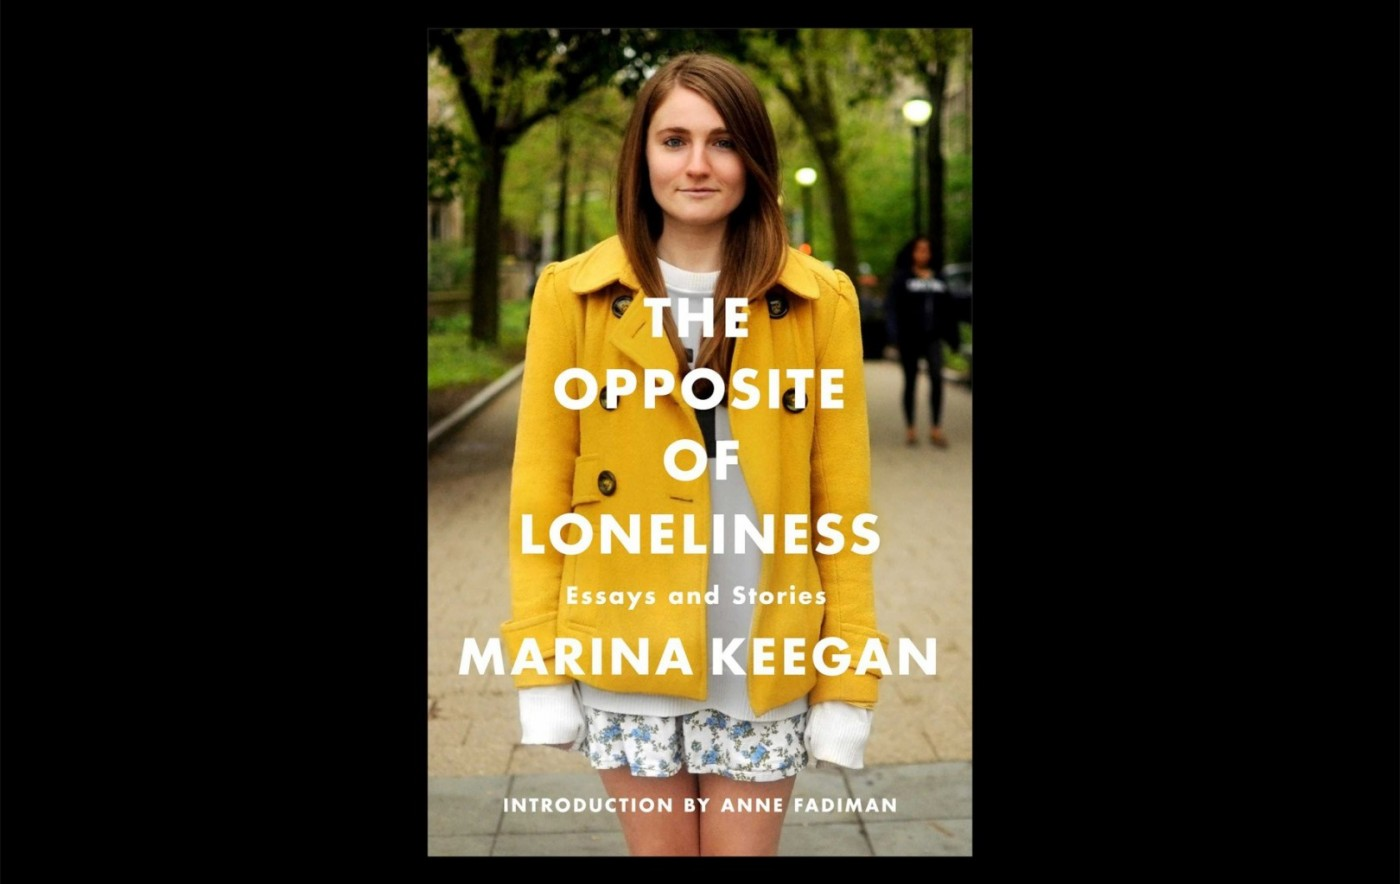 010 The Opposite Of Loneliness Essay Oppositeofloneliness Backgroundfit16202c1023ssl1 Fascinating Book Essays And Stories 1400